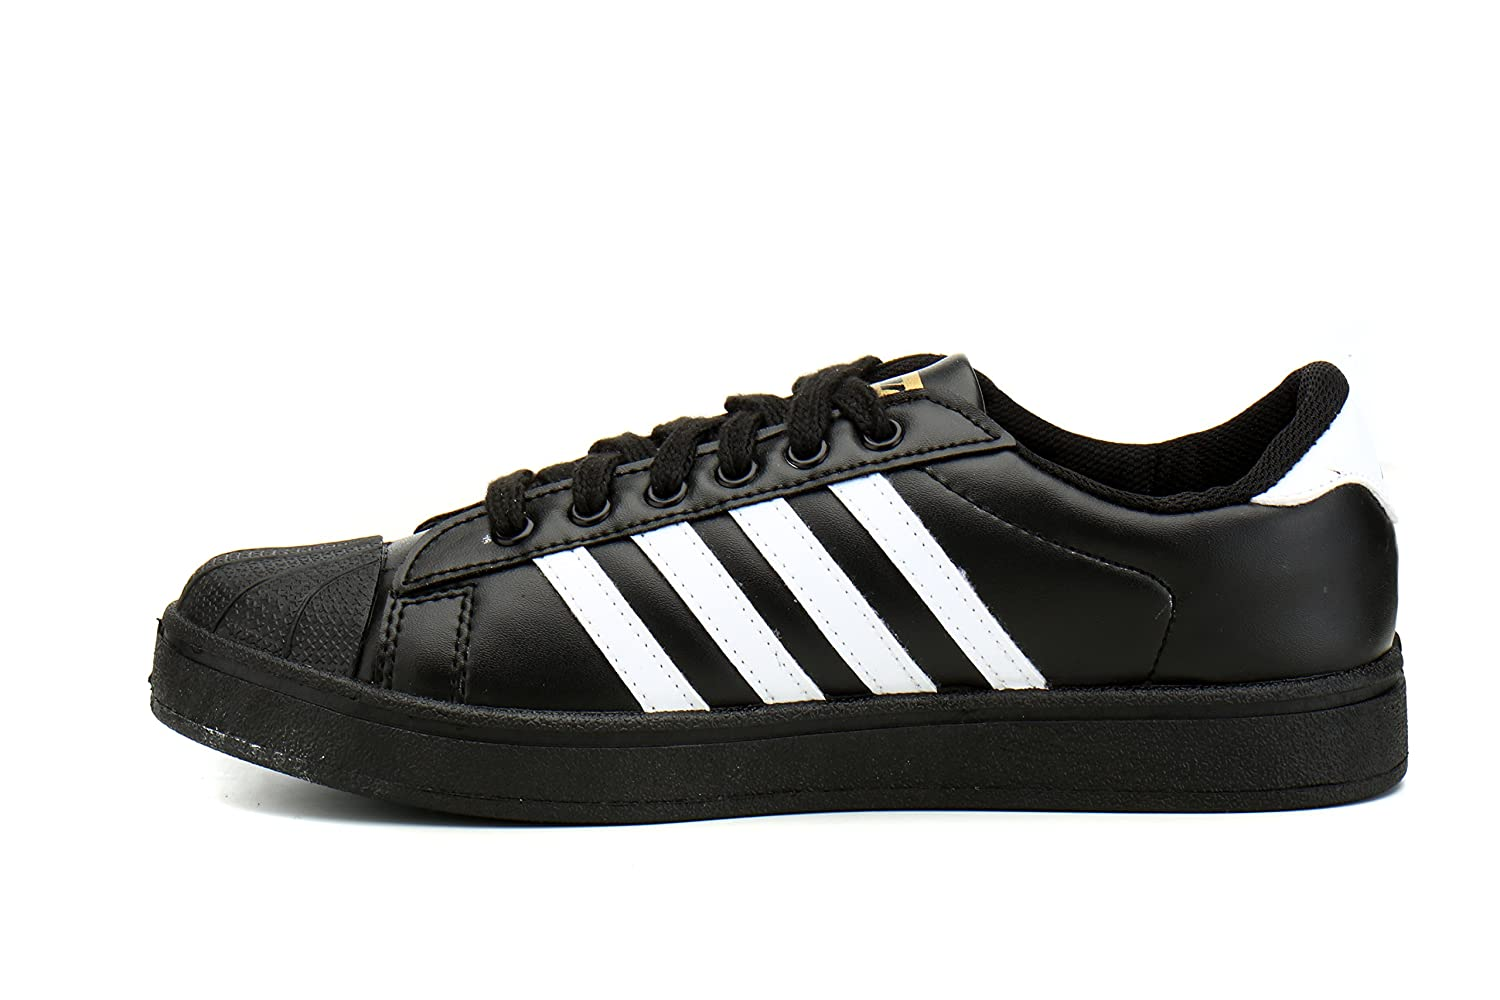 c0b2ca7f63 Sparx Men's Sm-323 Dip Canvas Shoes - Black: Buy Online at Low Prices in  India - Amazon.in